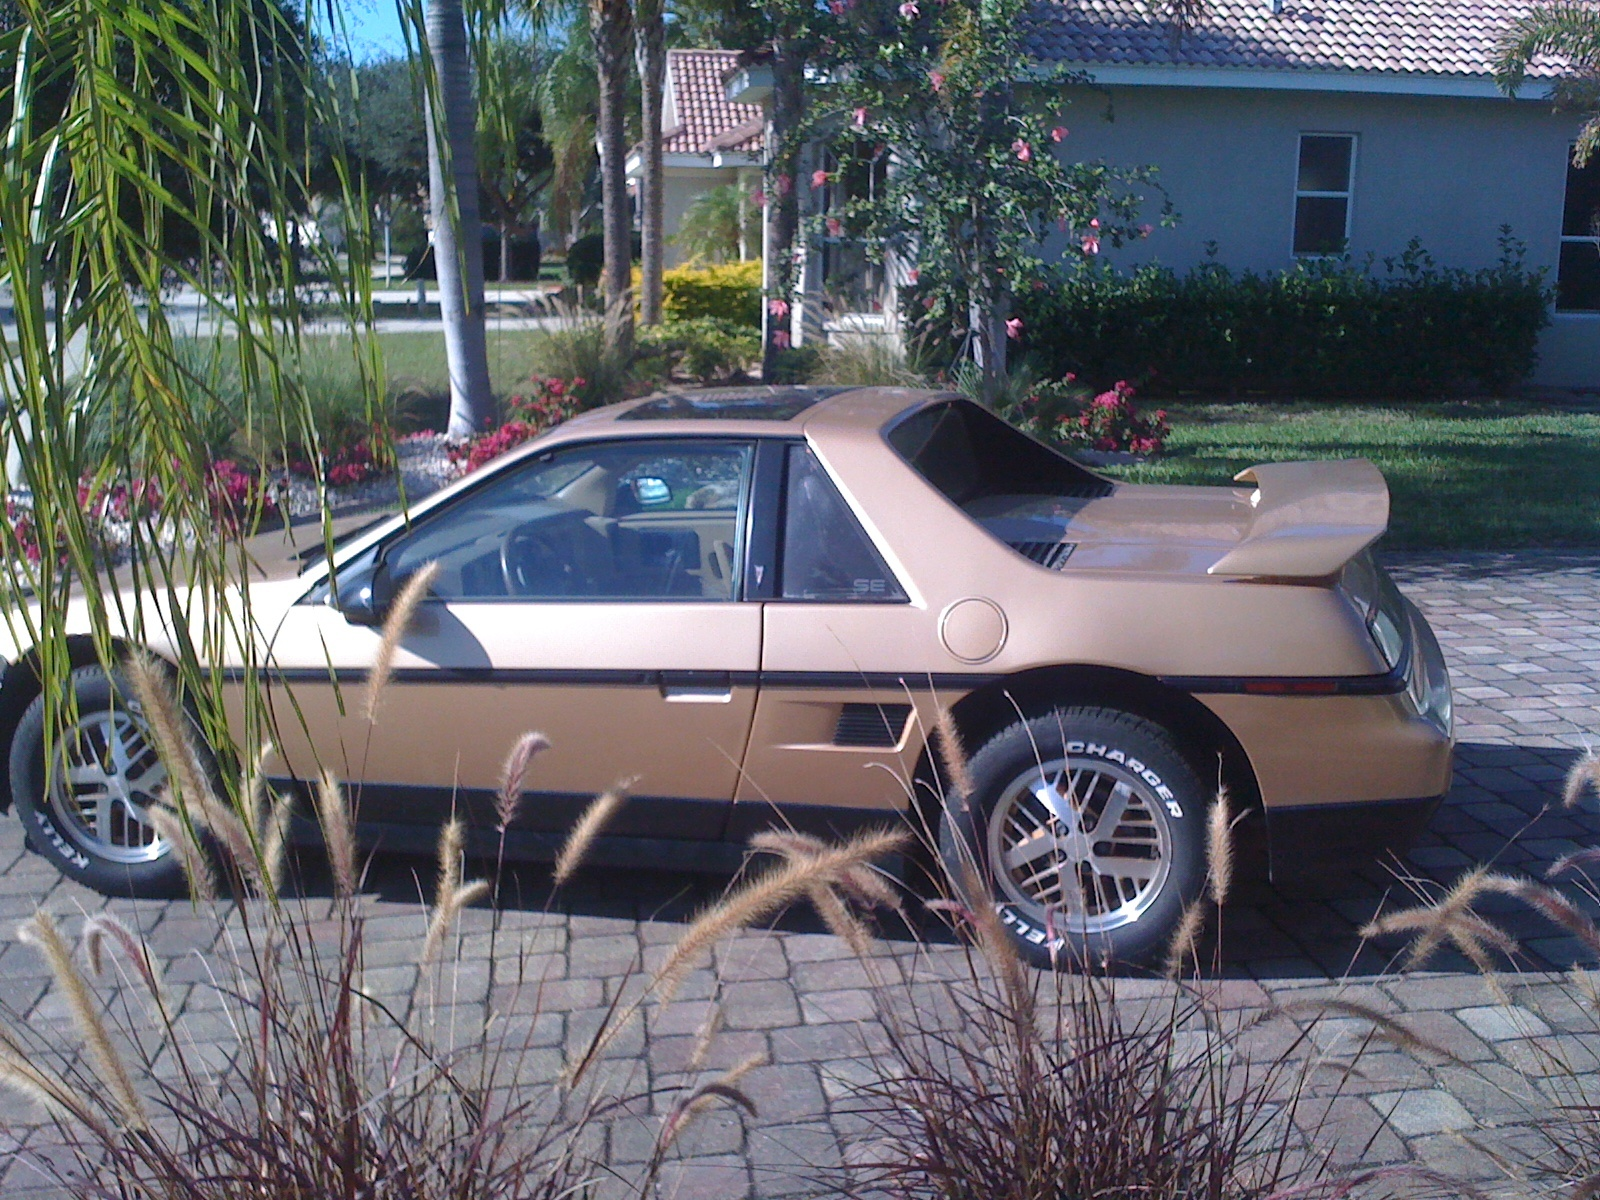 pontiac fiero questions decided to sell one owner bought it new 87k mi 86 se model. Black Bedroom Furniture Sets. Home Design Ideas